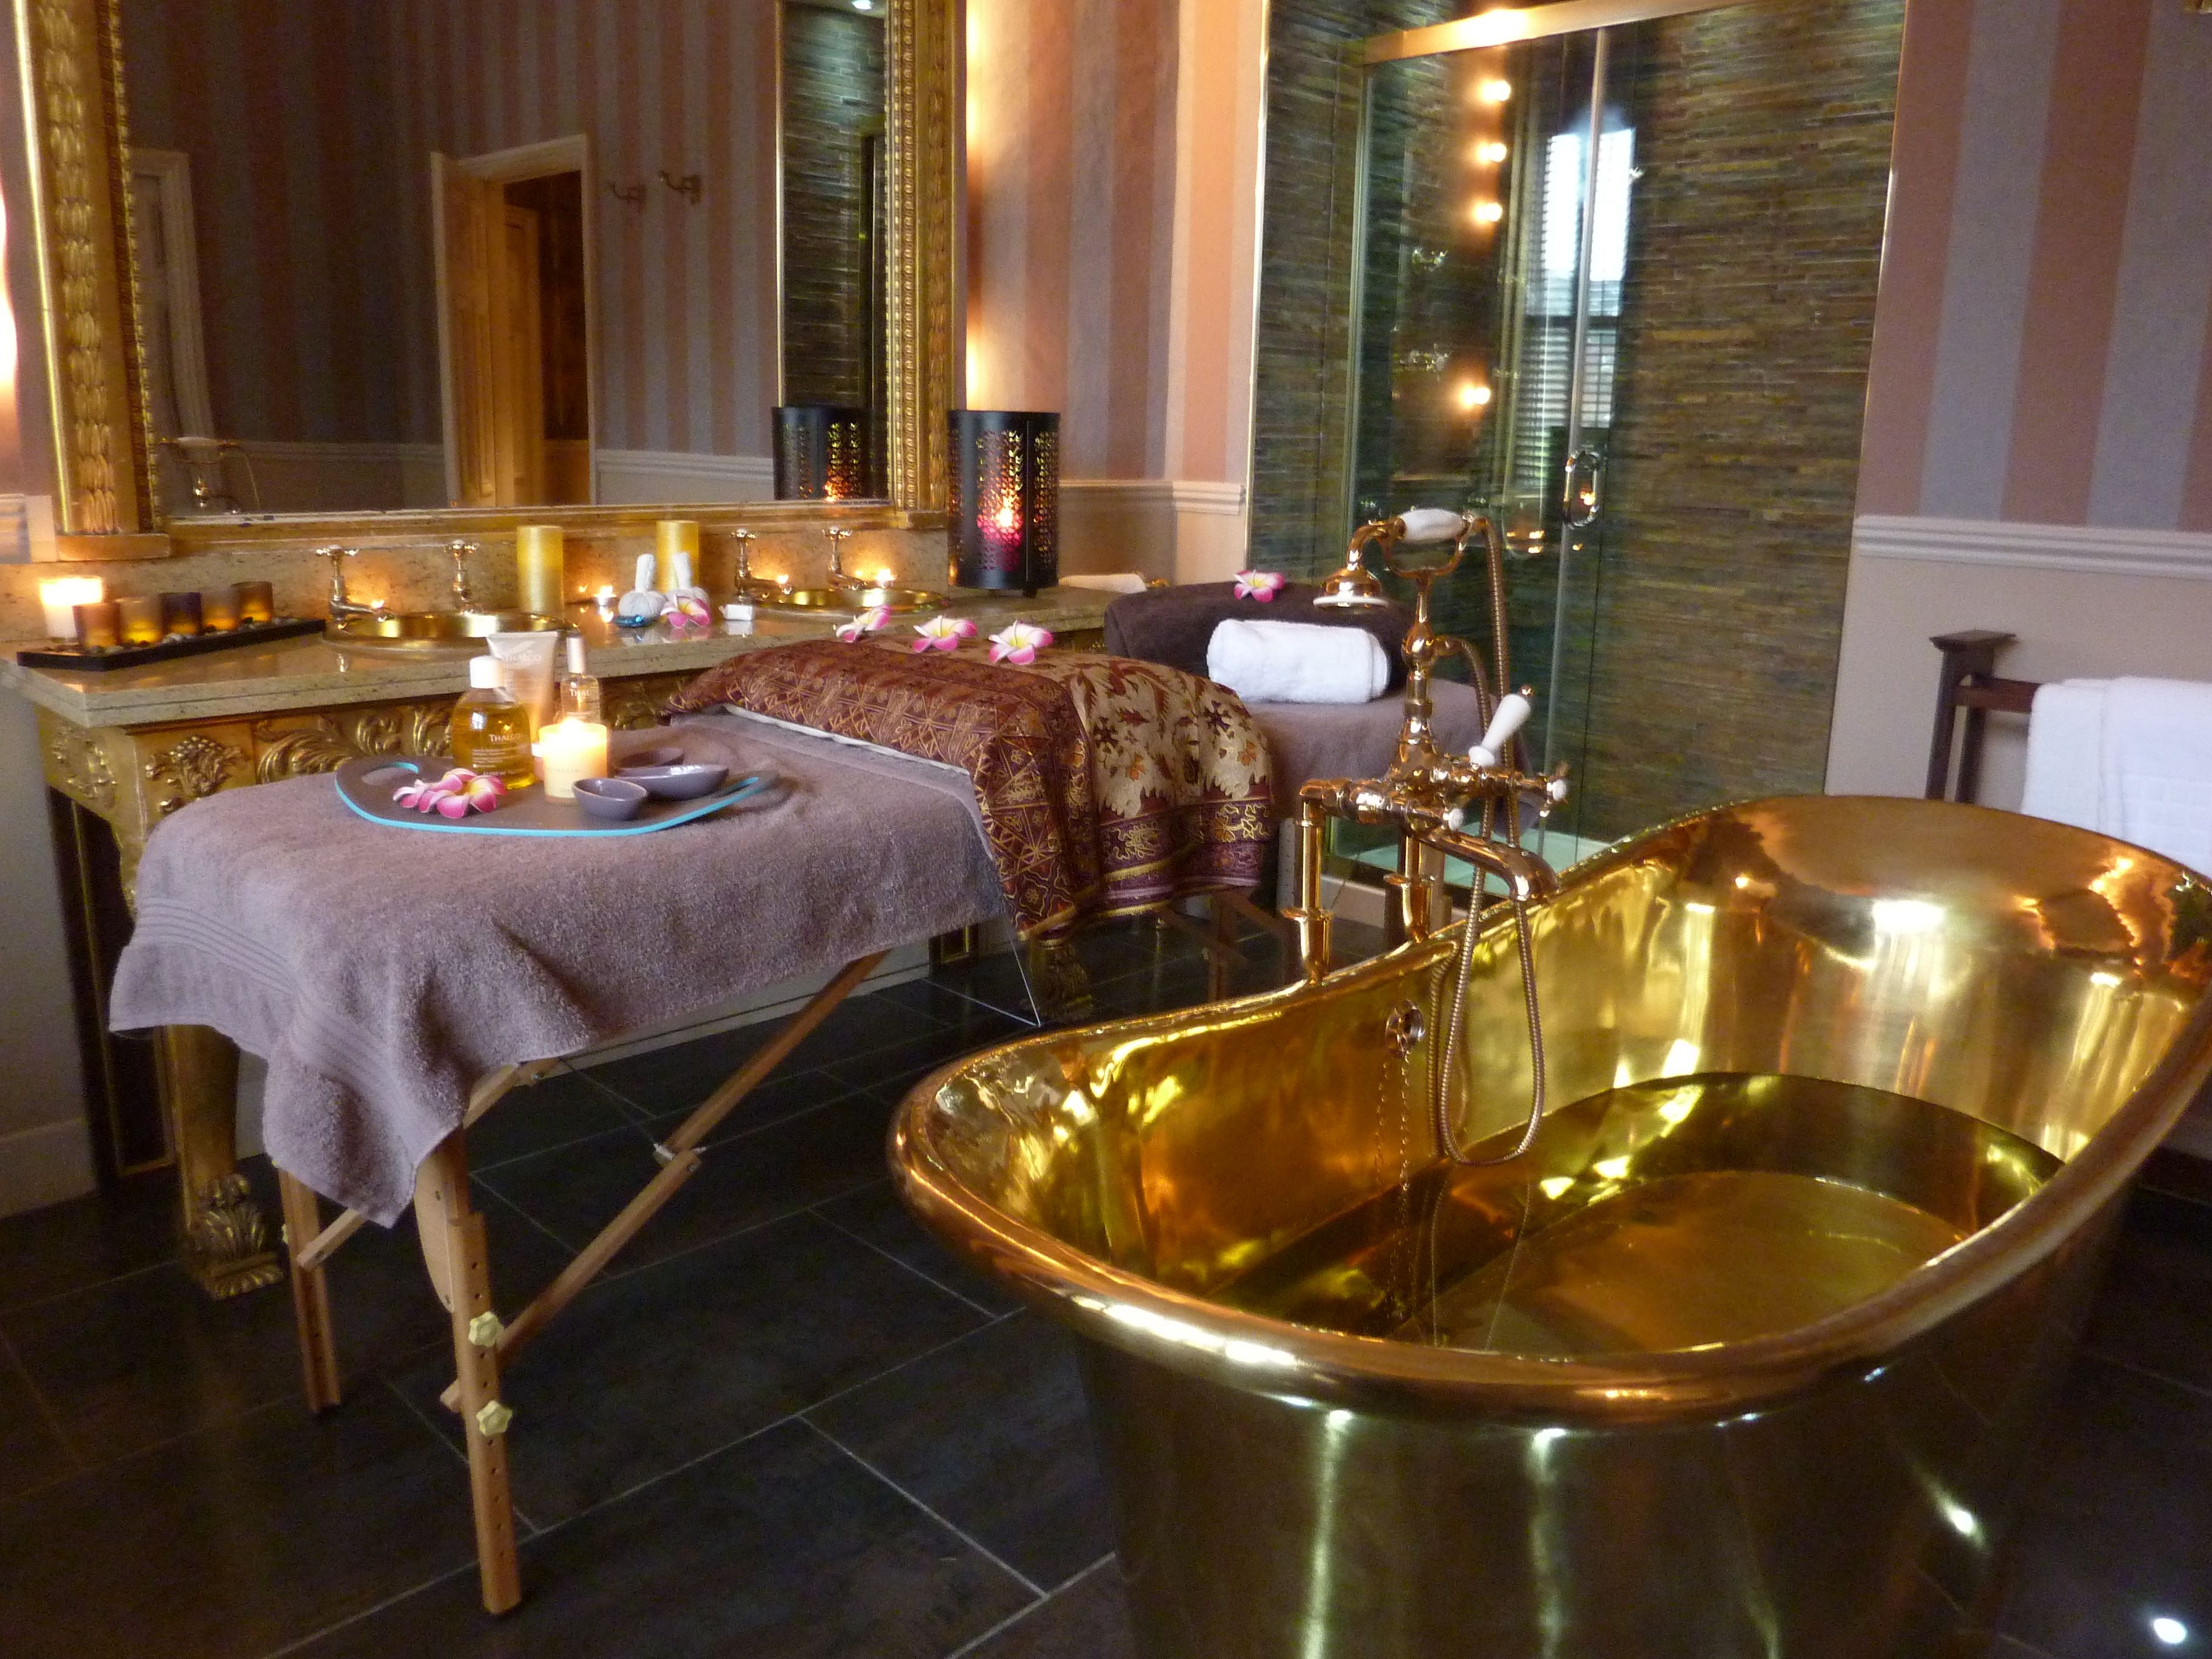 William Holland Brass Bateau Bath In The Private Spa Of Cathedral Suite At Swan